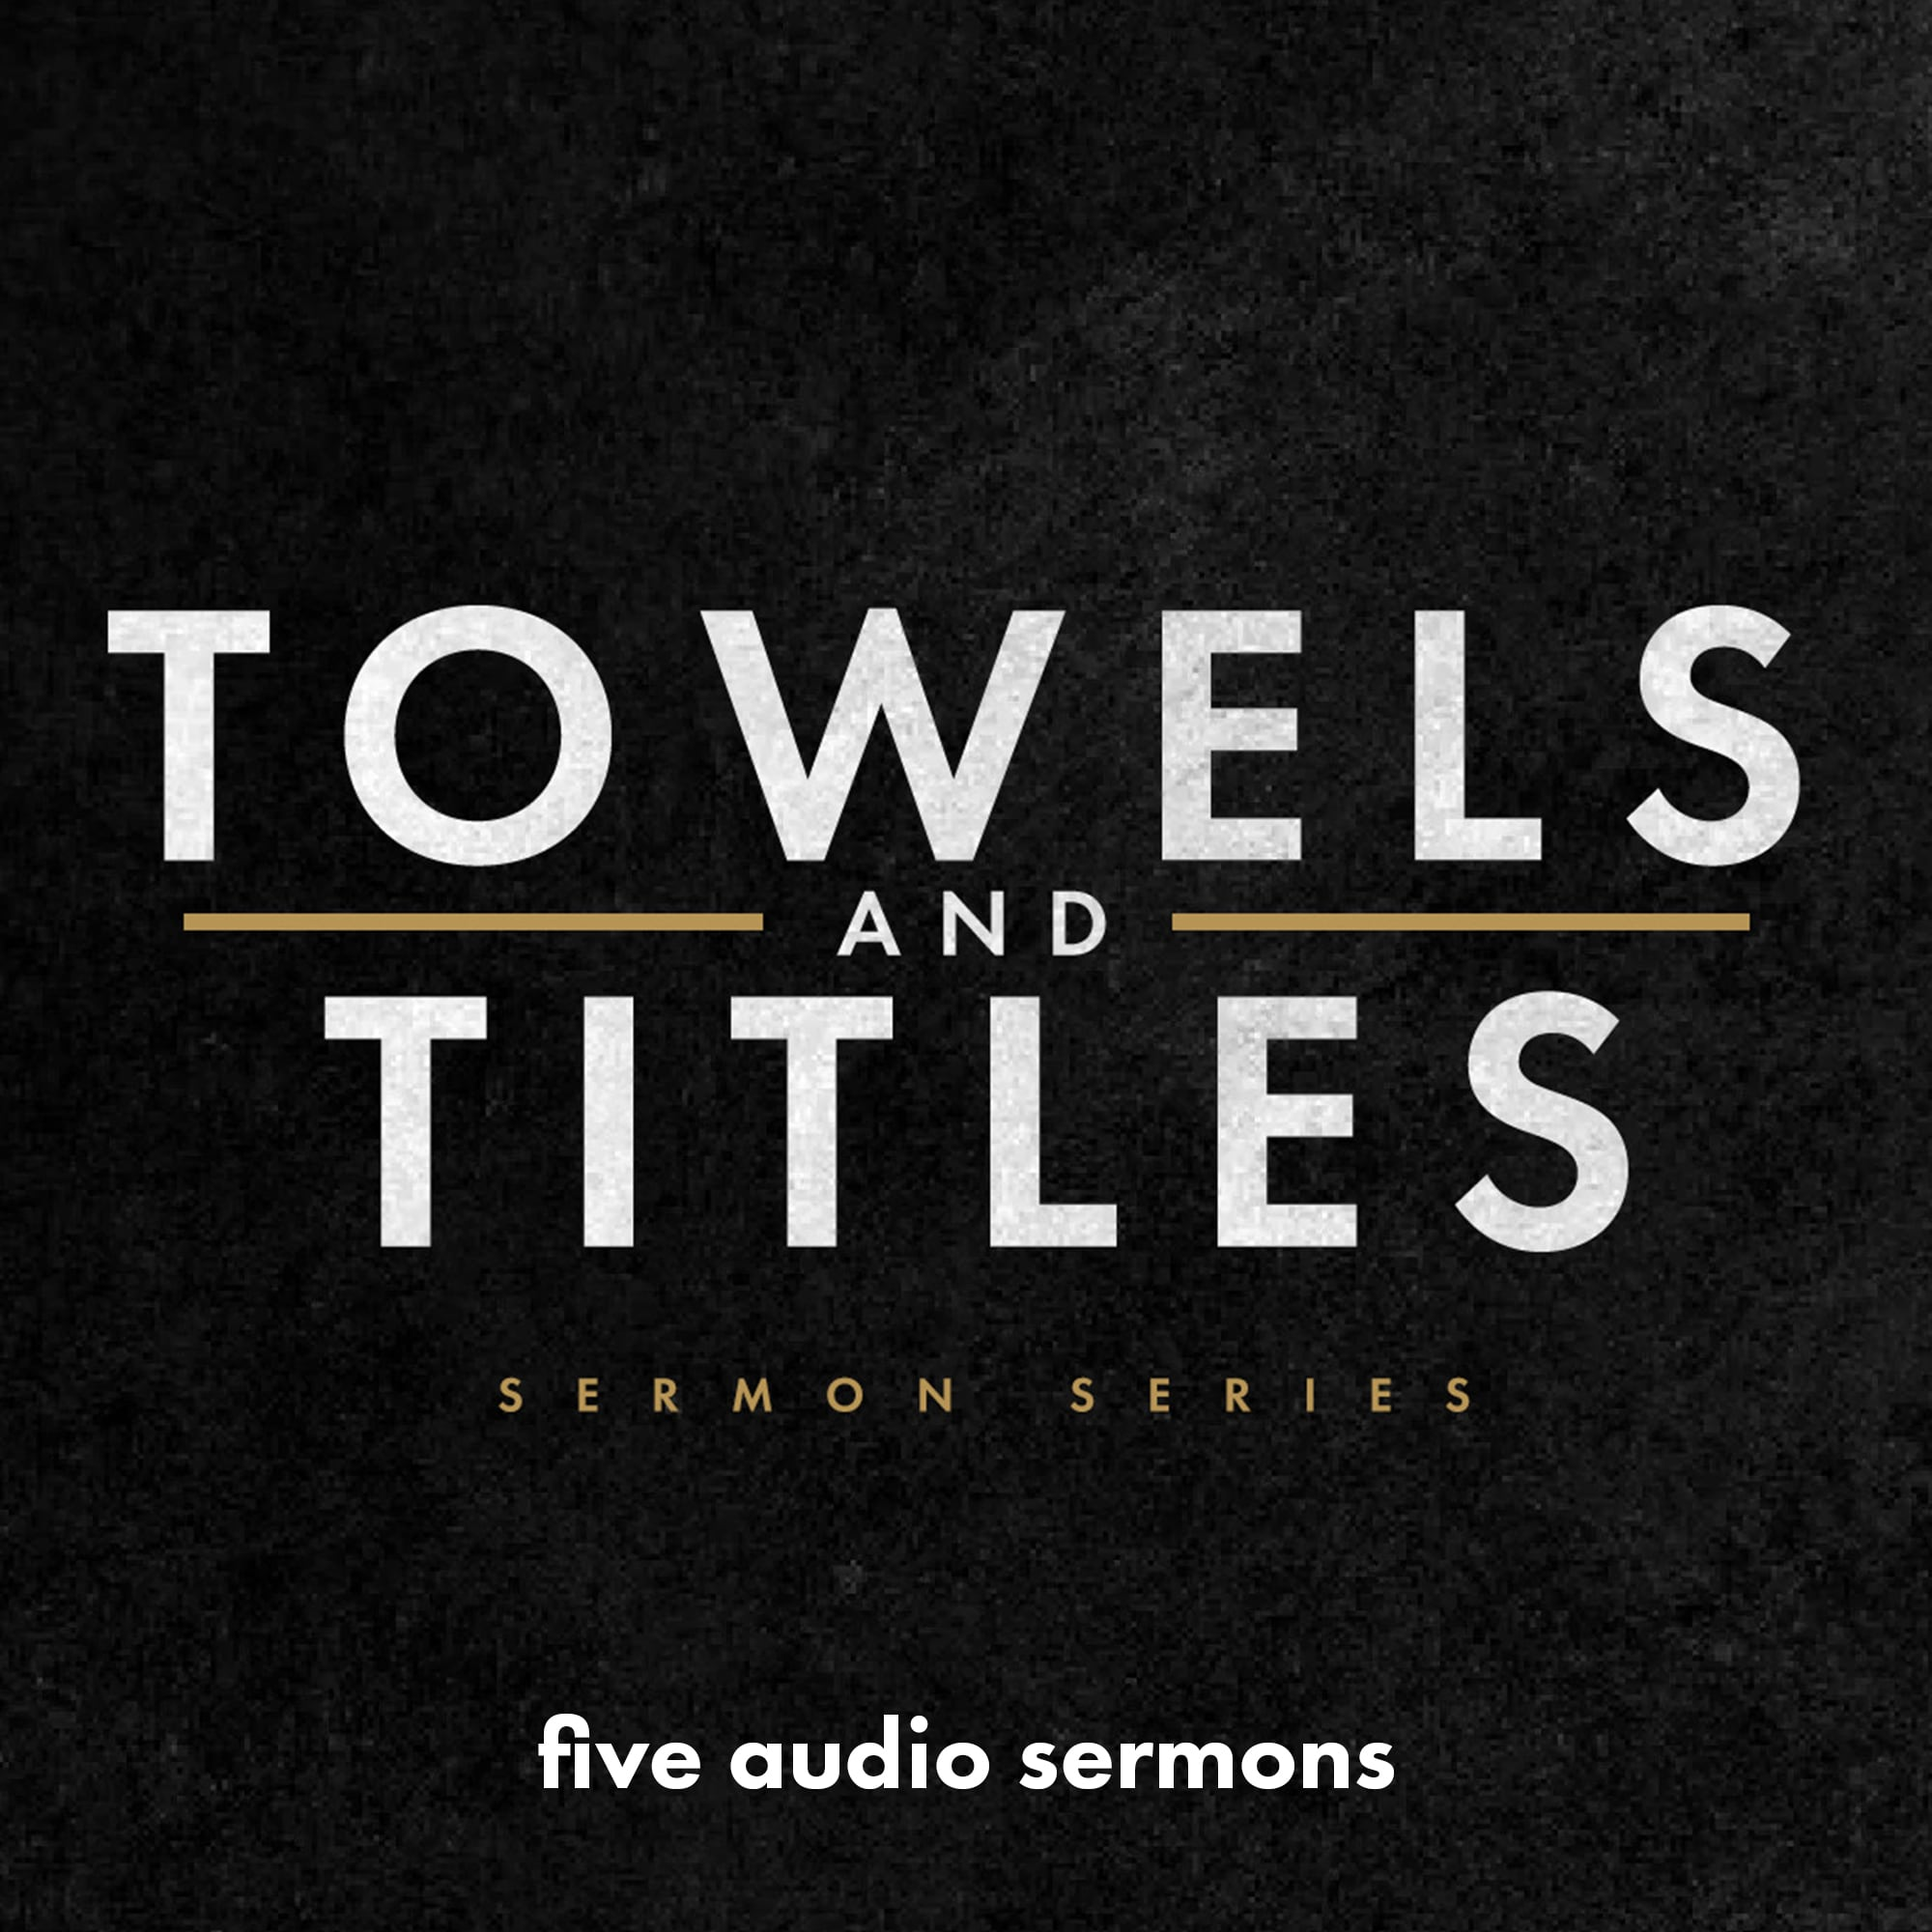 Series: Towels and Titles